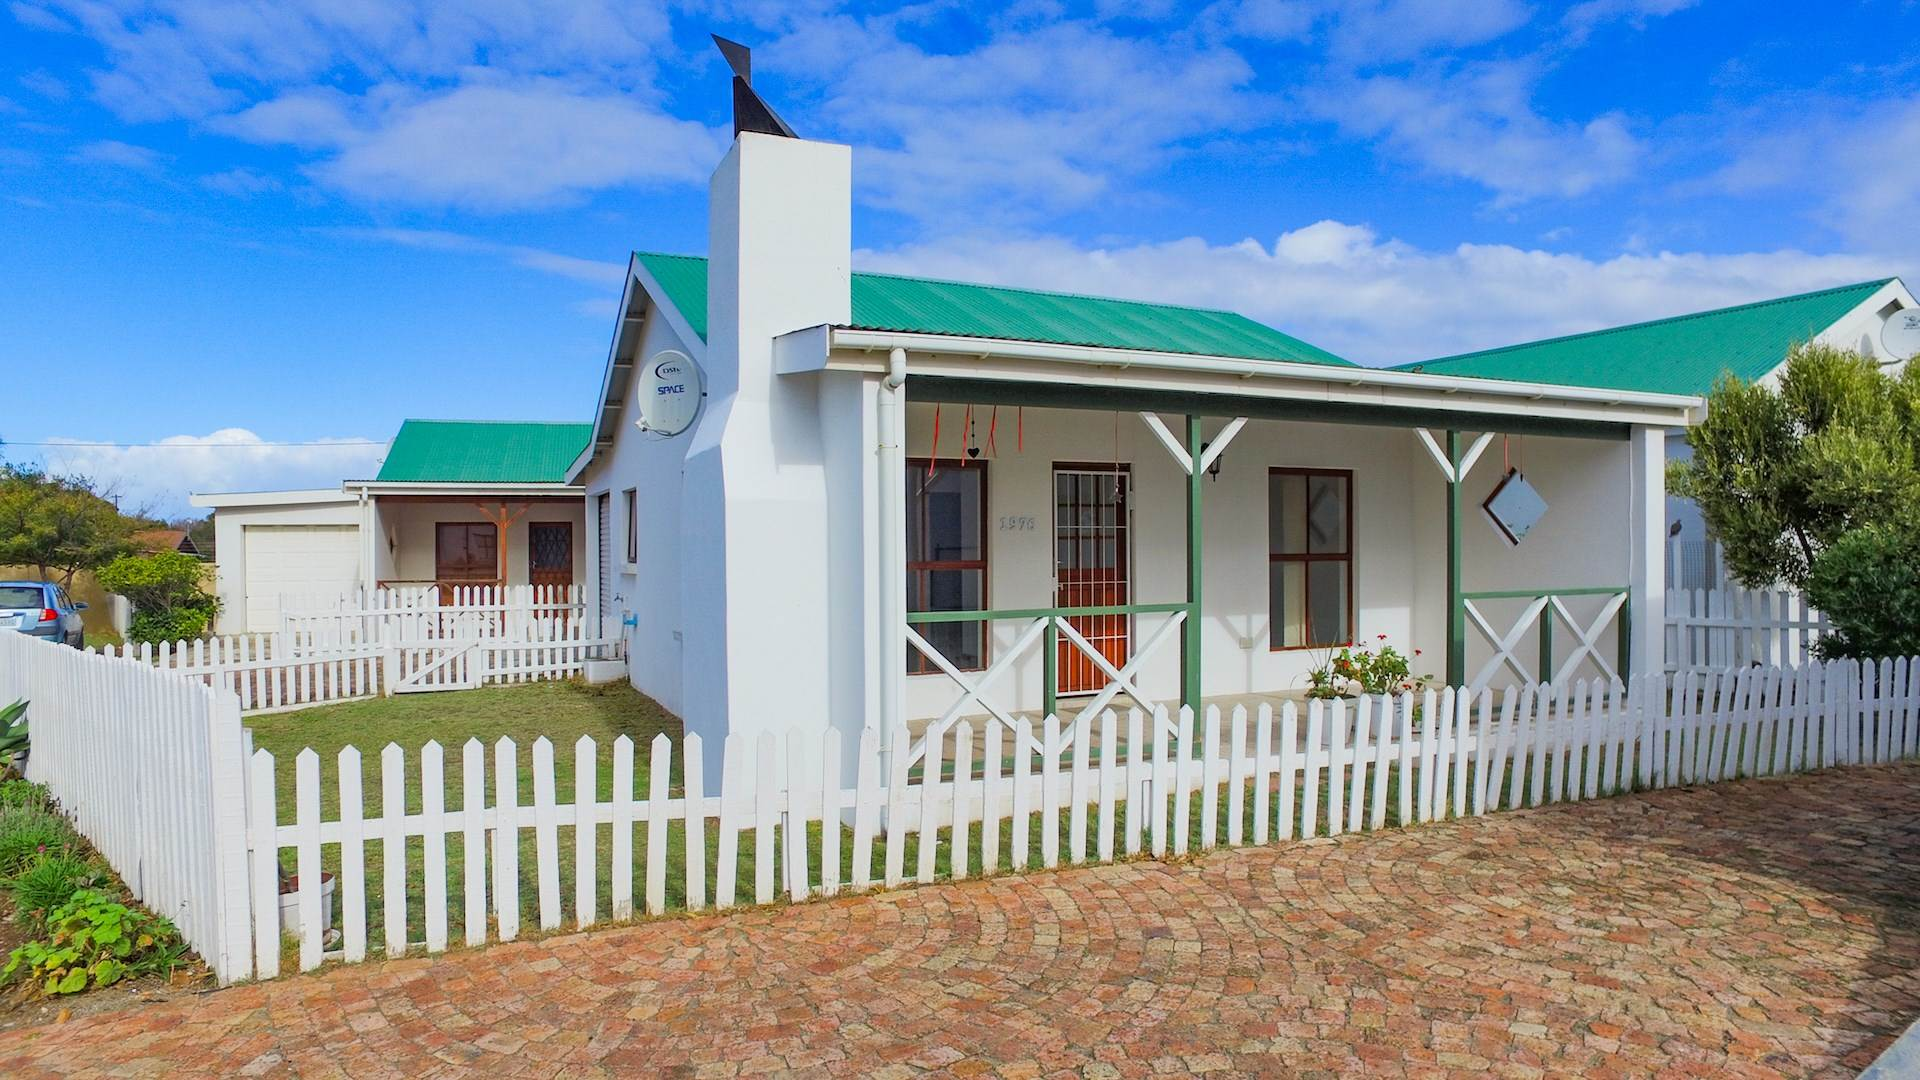 2 BedroomHouse For Sale In Sandbaai